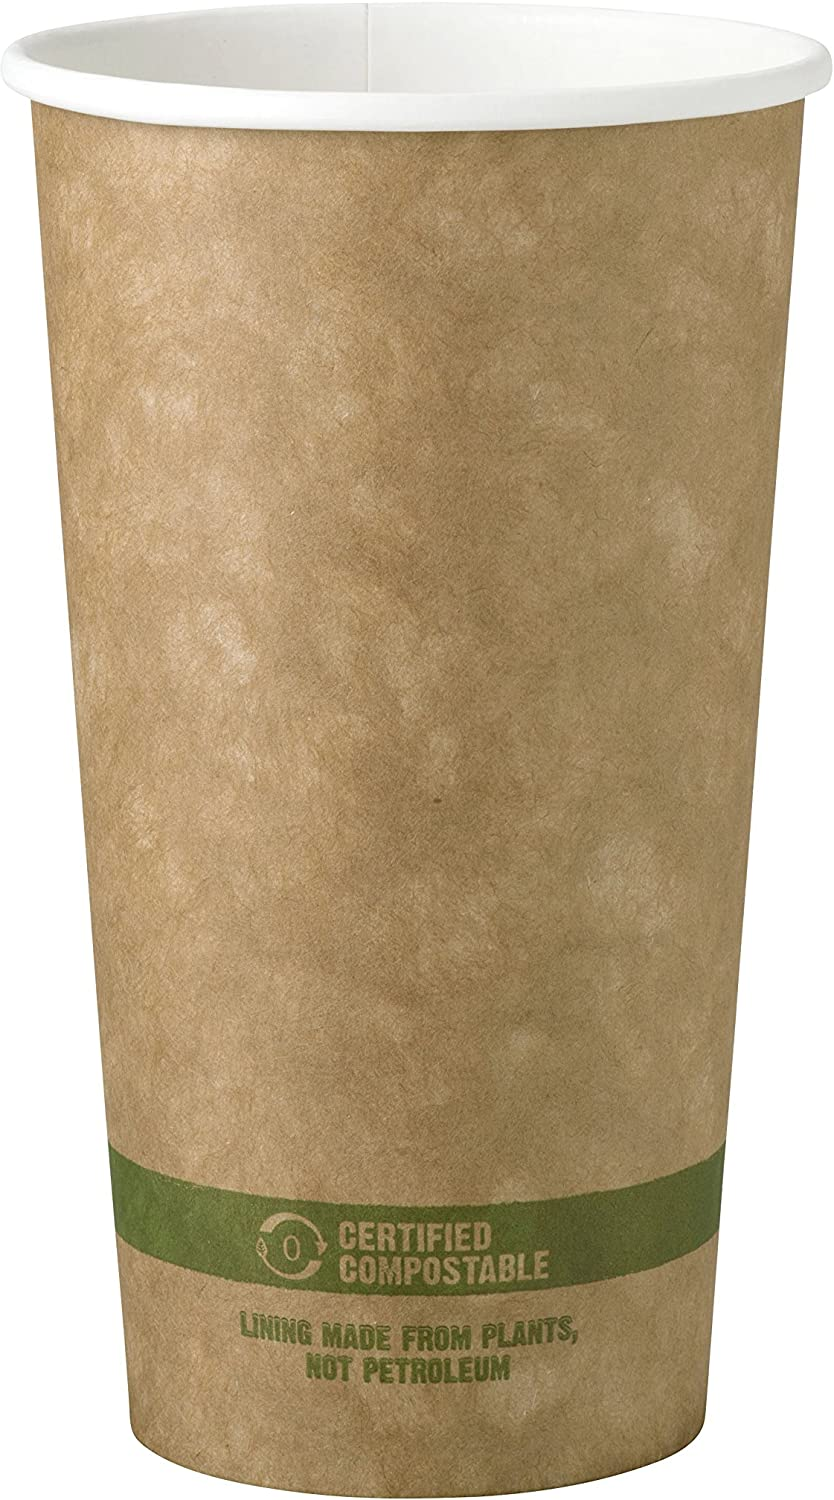 World Centric 100% Compostable Max 84% OFF Cups by Made Paper Max 87% OFF